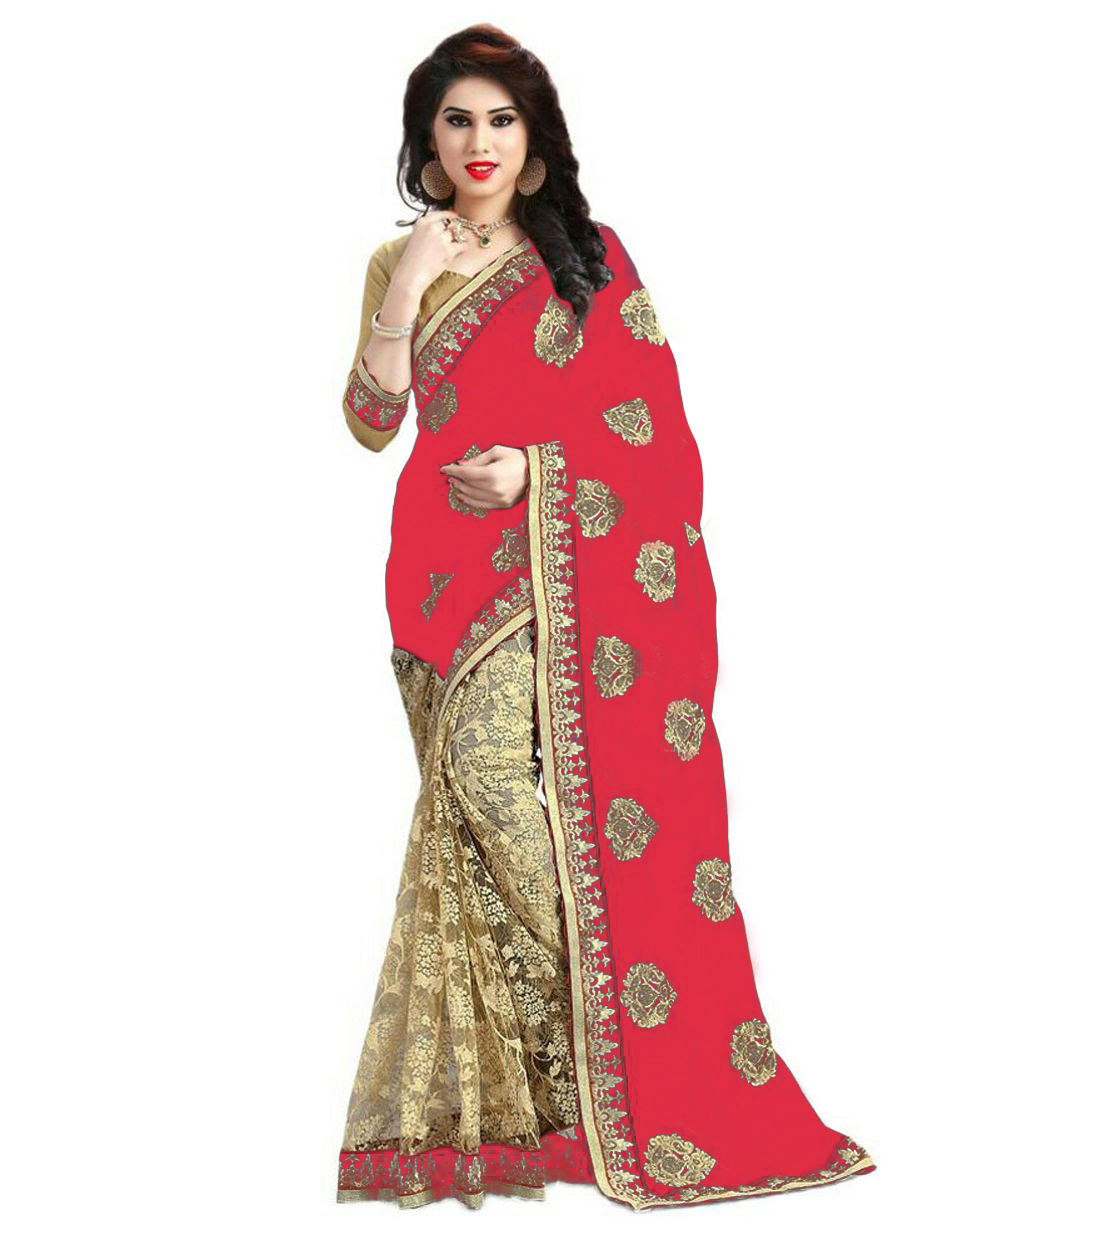 Georgette & Rasal Net Embroidery work saree collection